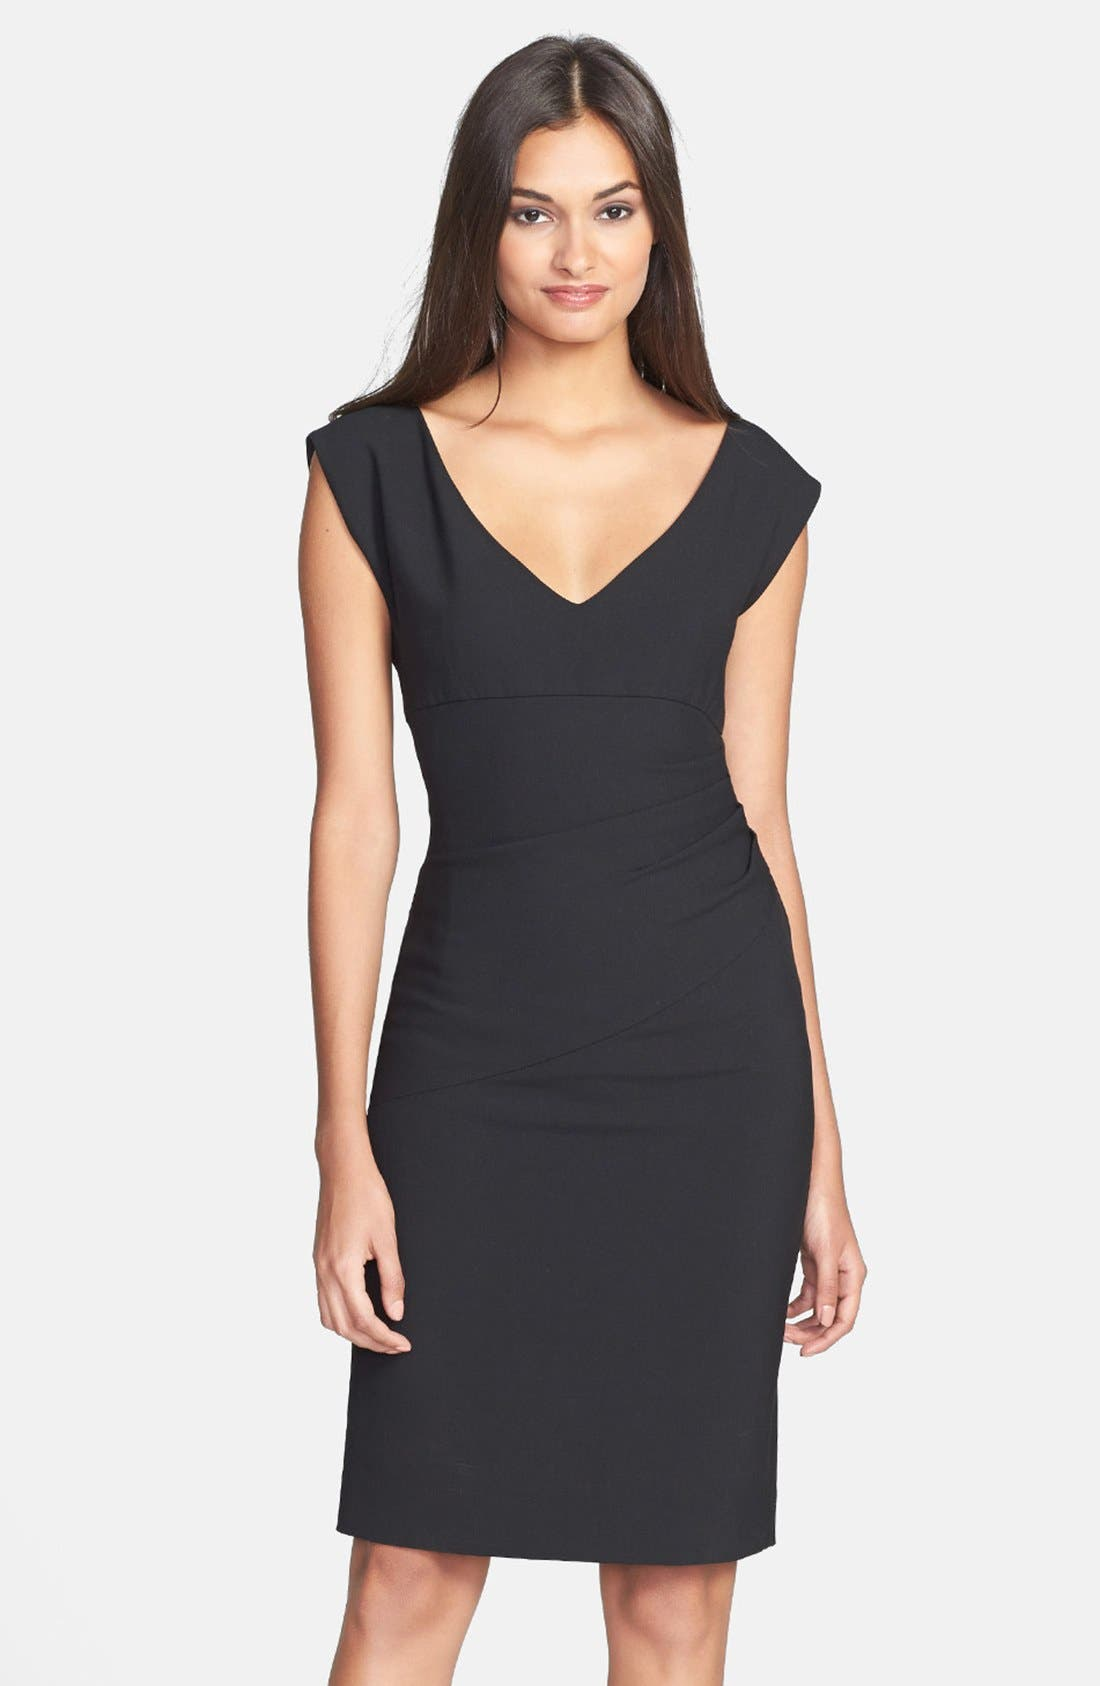 DIANE VON FURSTENBERG, 'Bevin' Ruched Knit Sheath Dress, Main thumbnail 1, color, 001